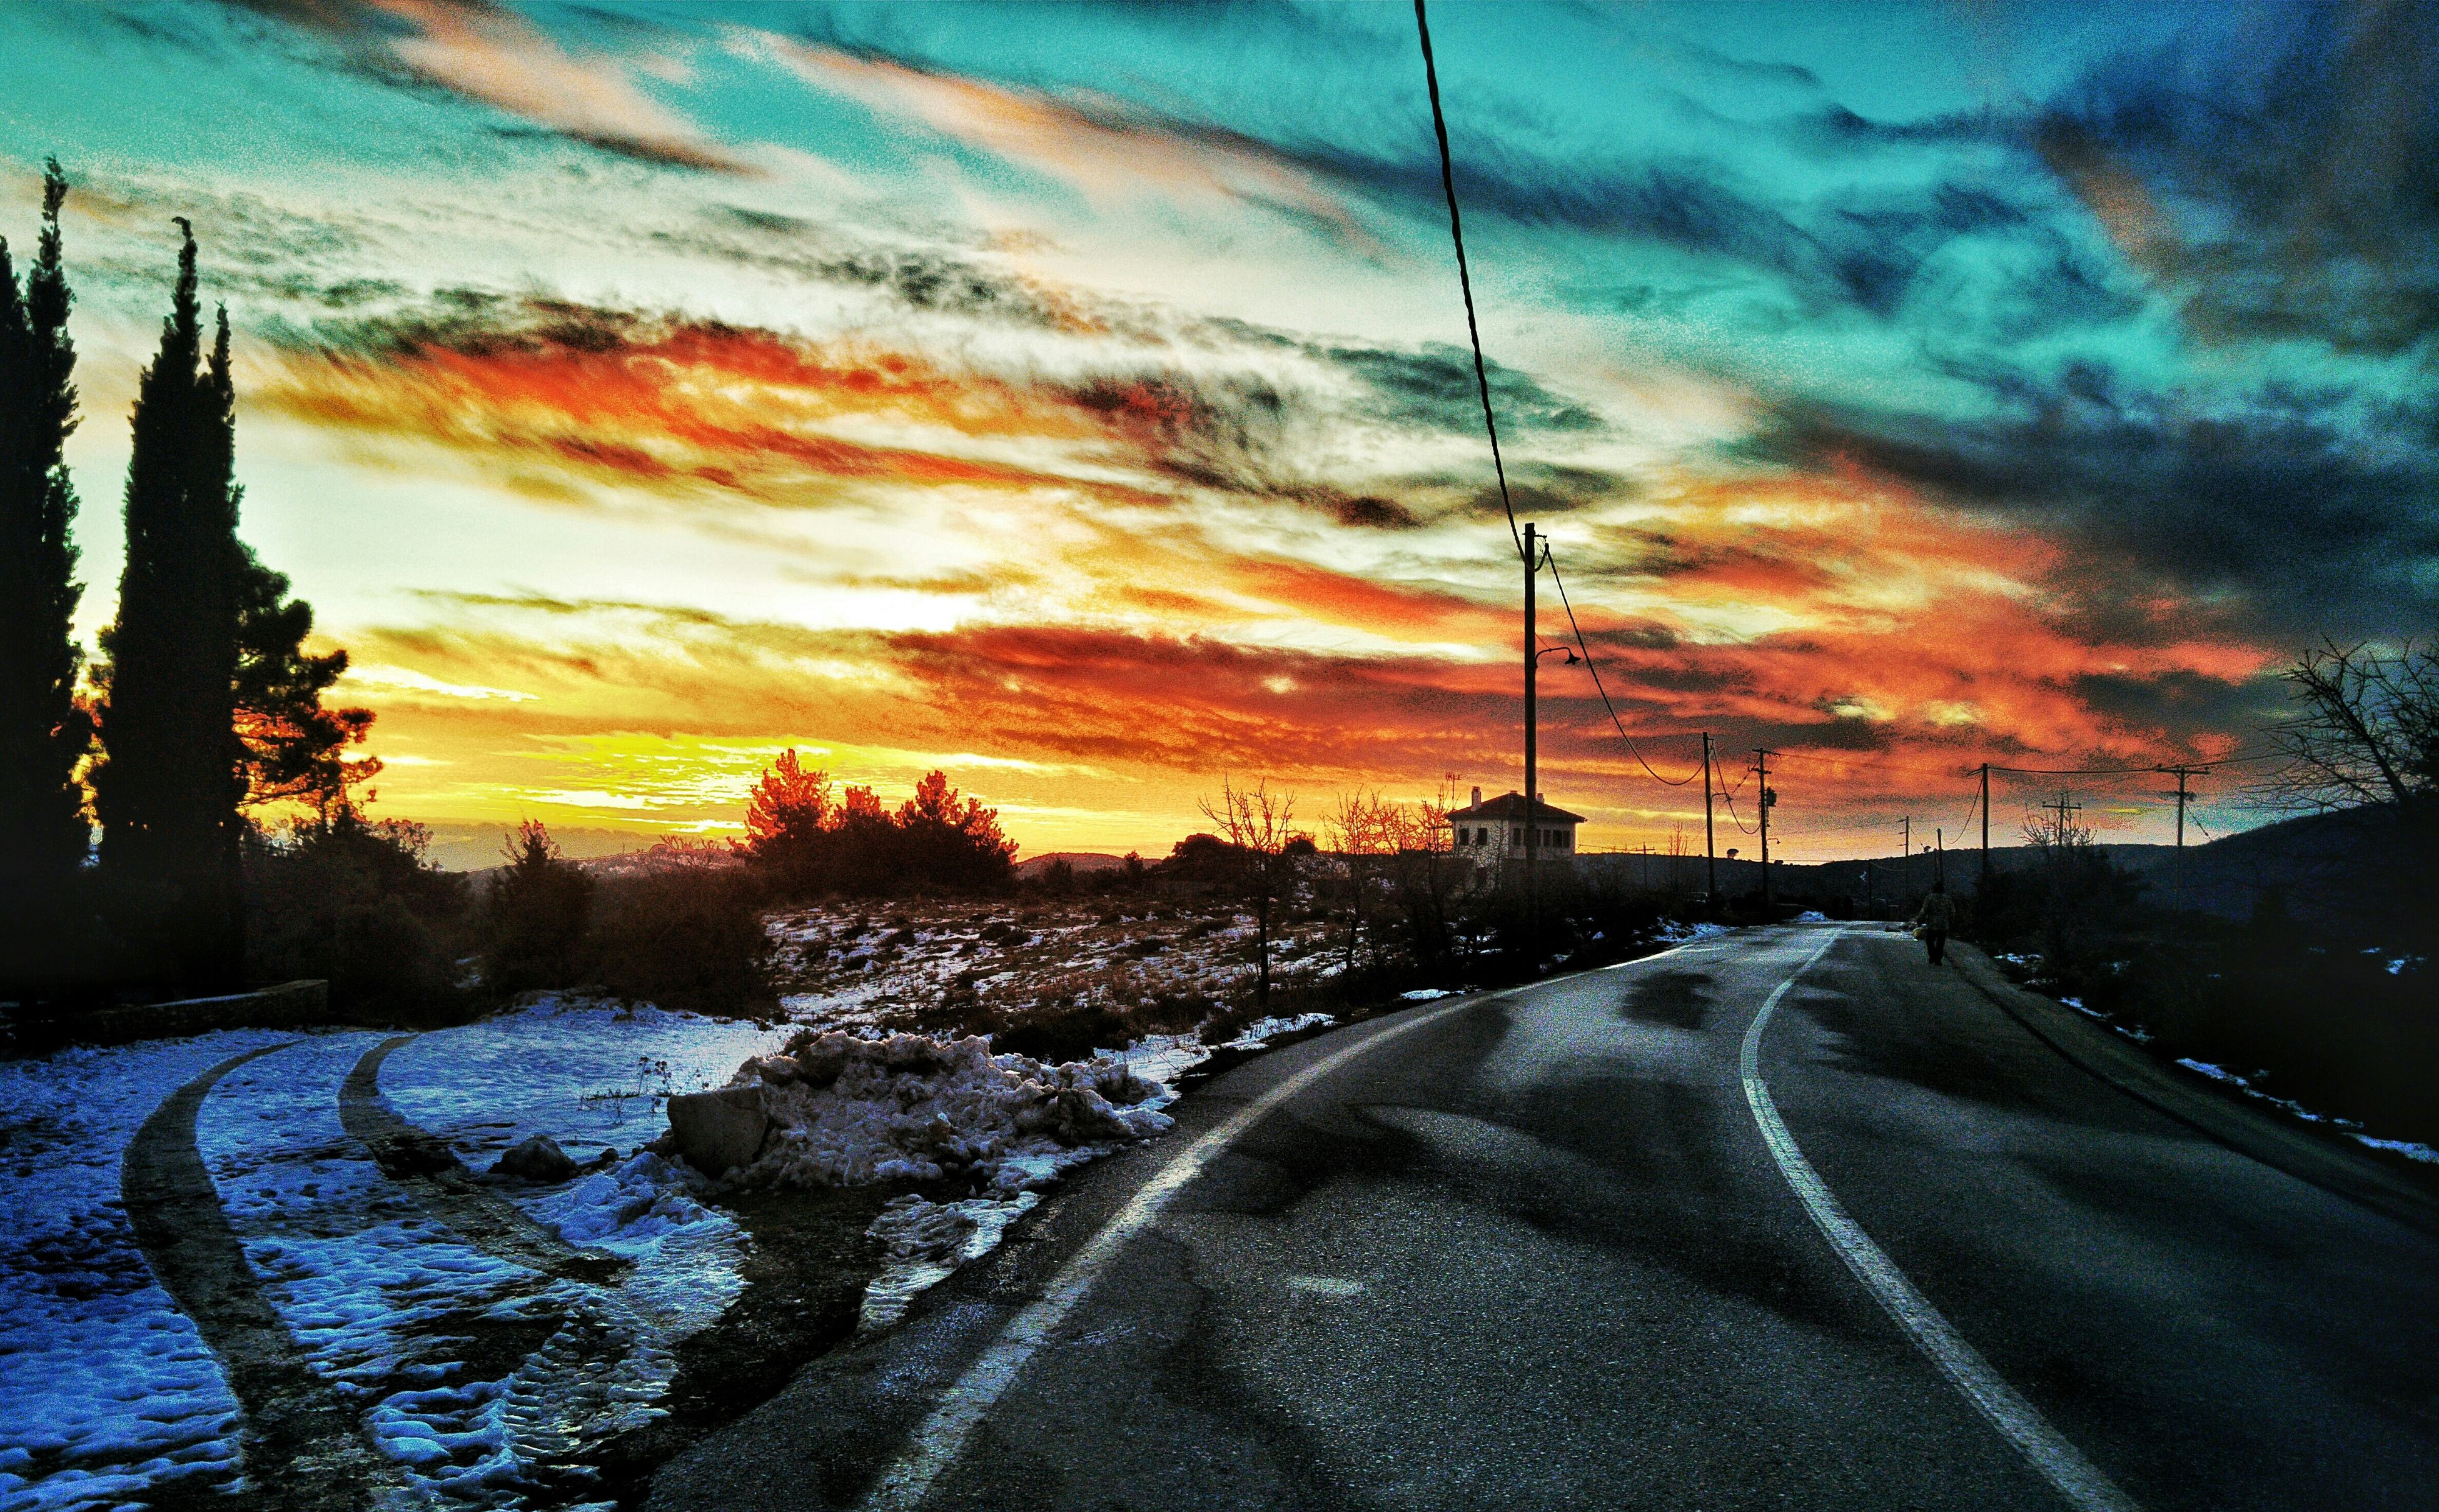 sunset, sky, cloud - sky, snow, cold temperature, weather, winter, season, beauty in nature, scenics, tranquility, orange color, the way forward, tranquil scene, nature, cloudy, dramatic sky, road, cloud, covering